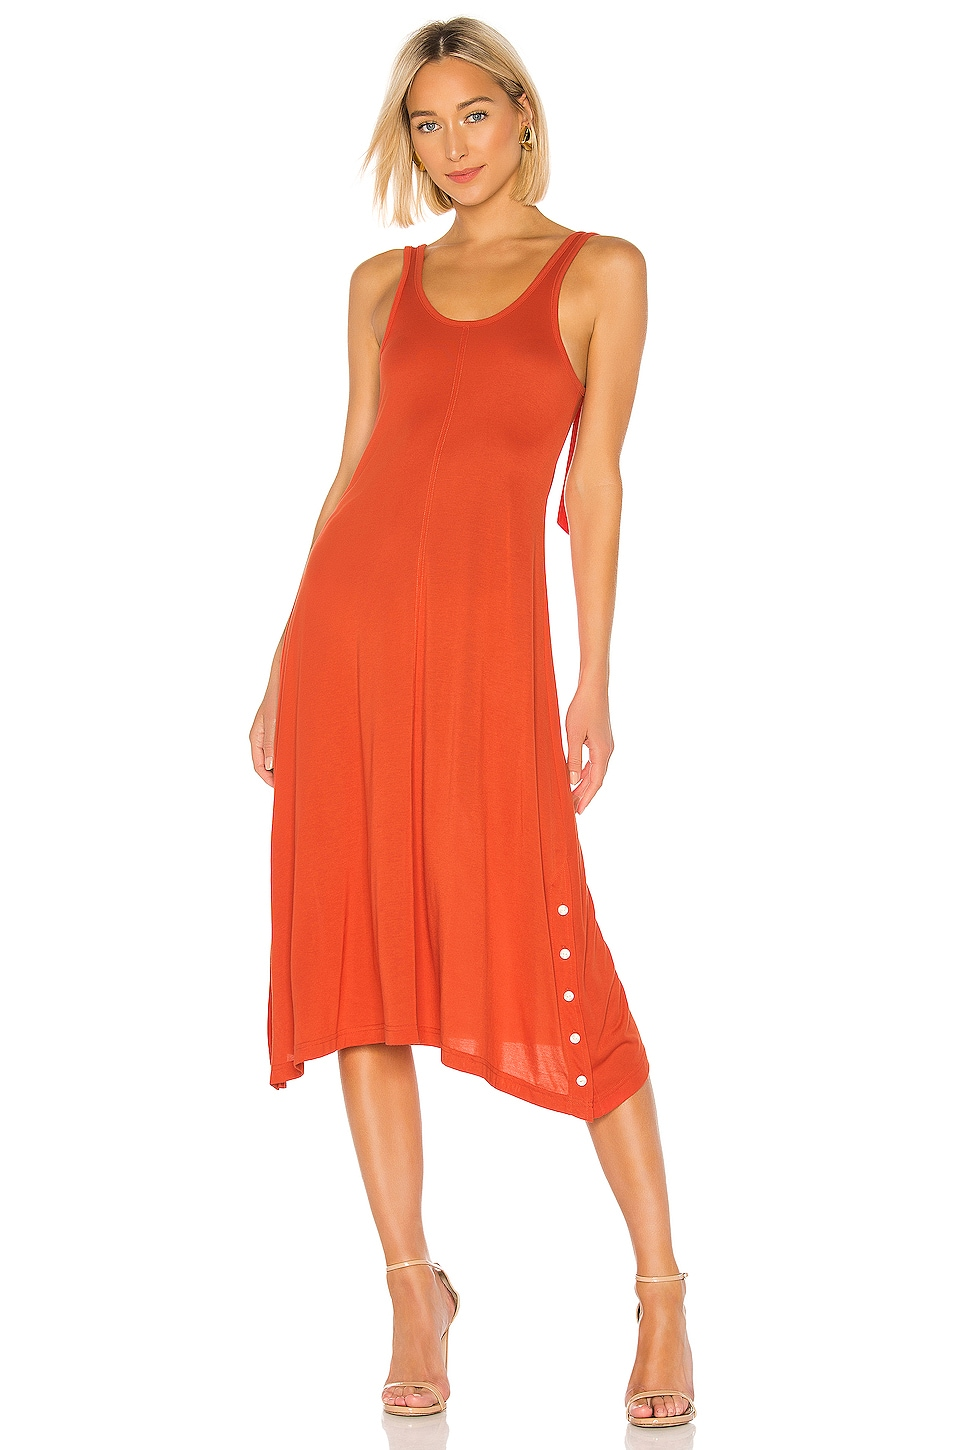 Rag & Bone Allegra Tank Dress in Fire Red